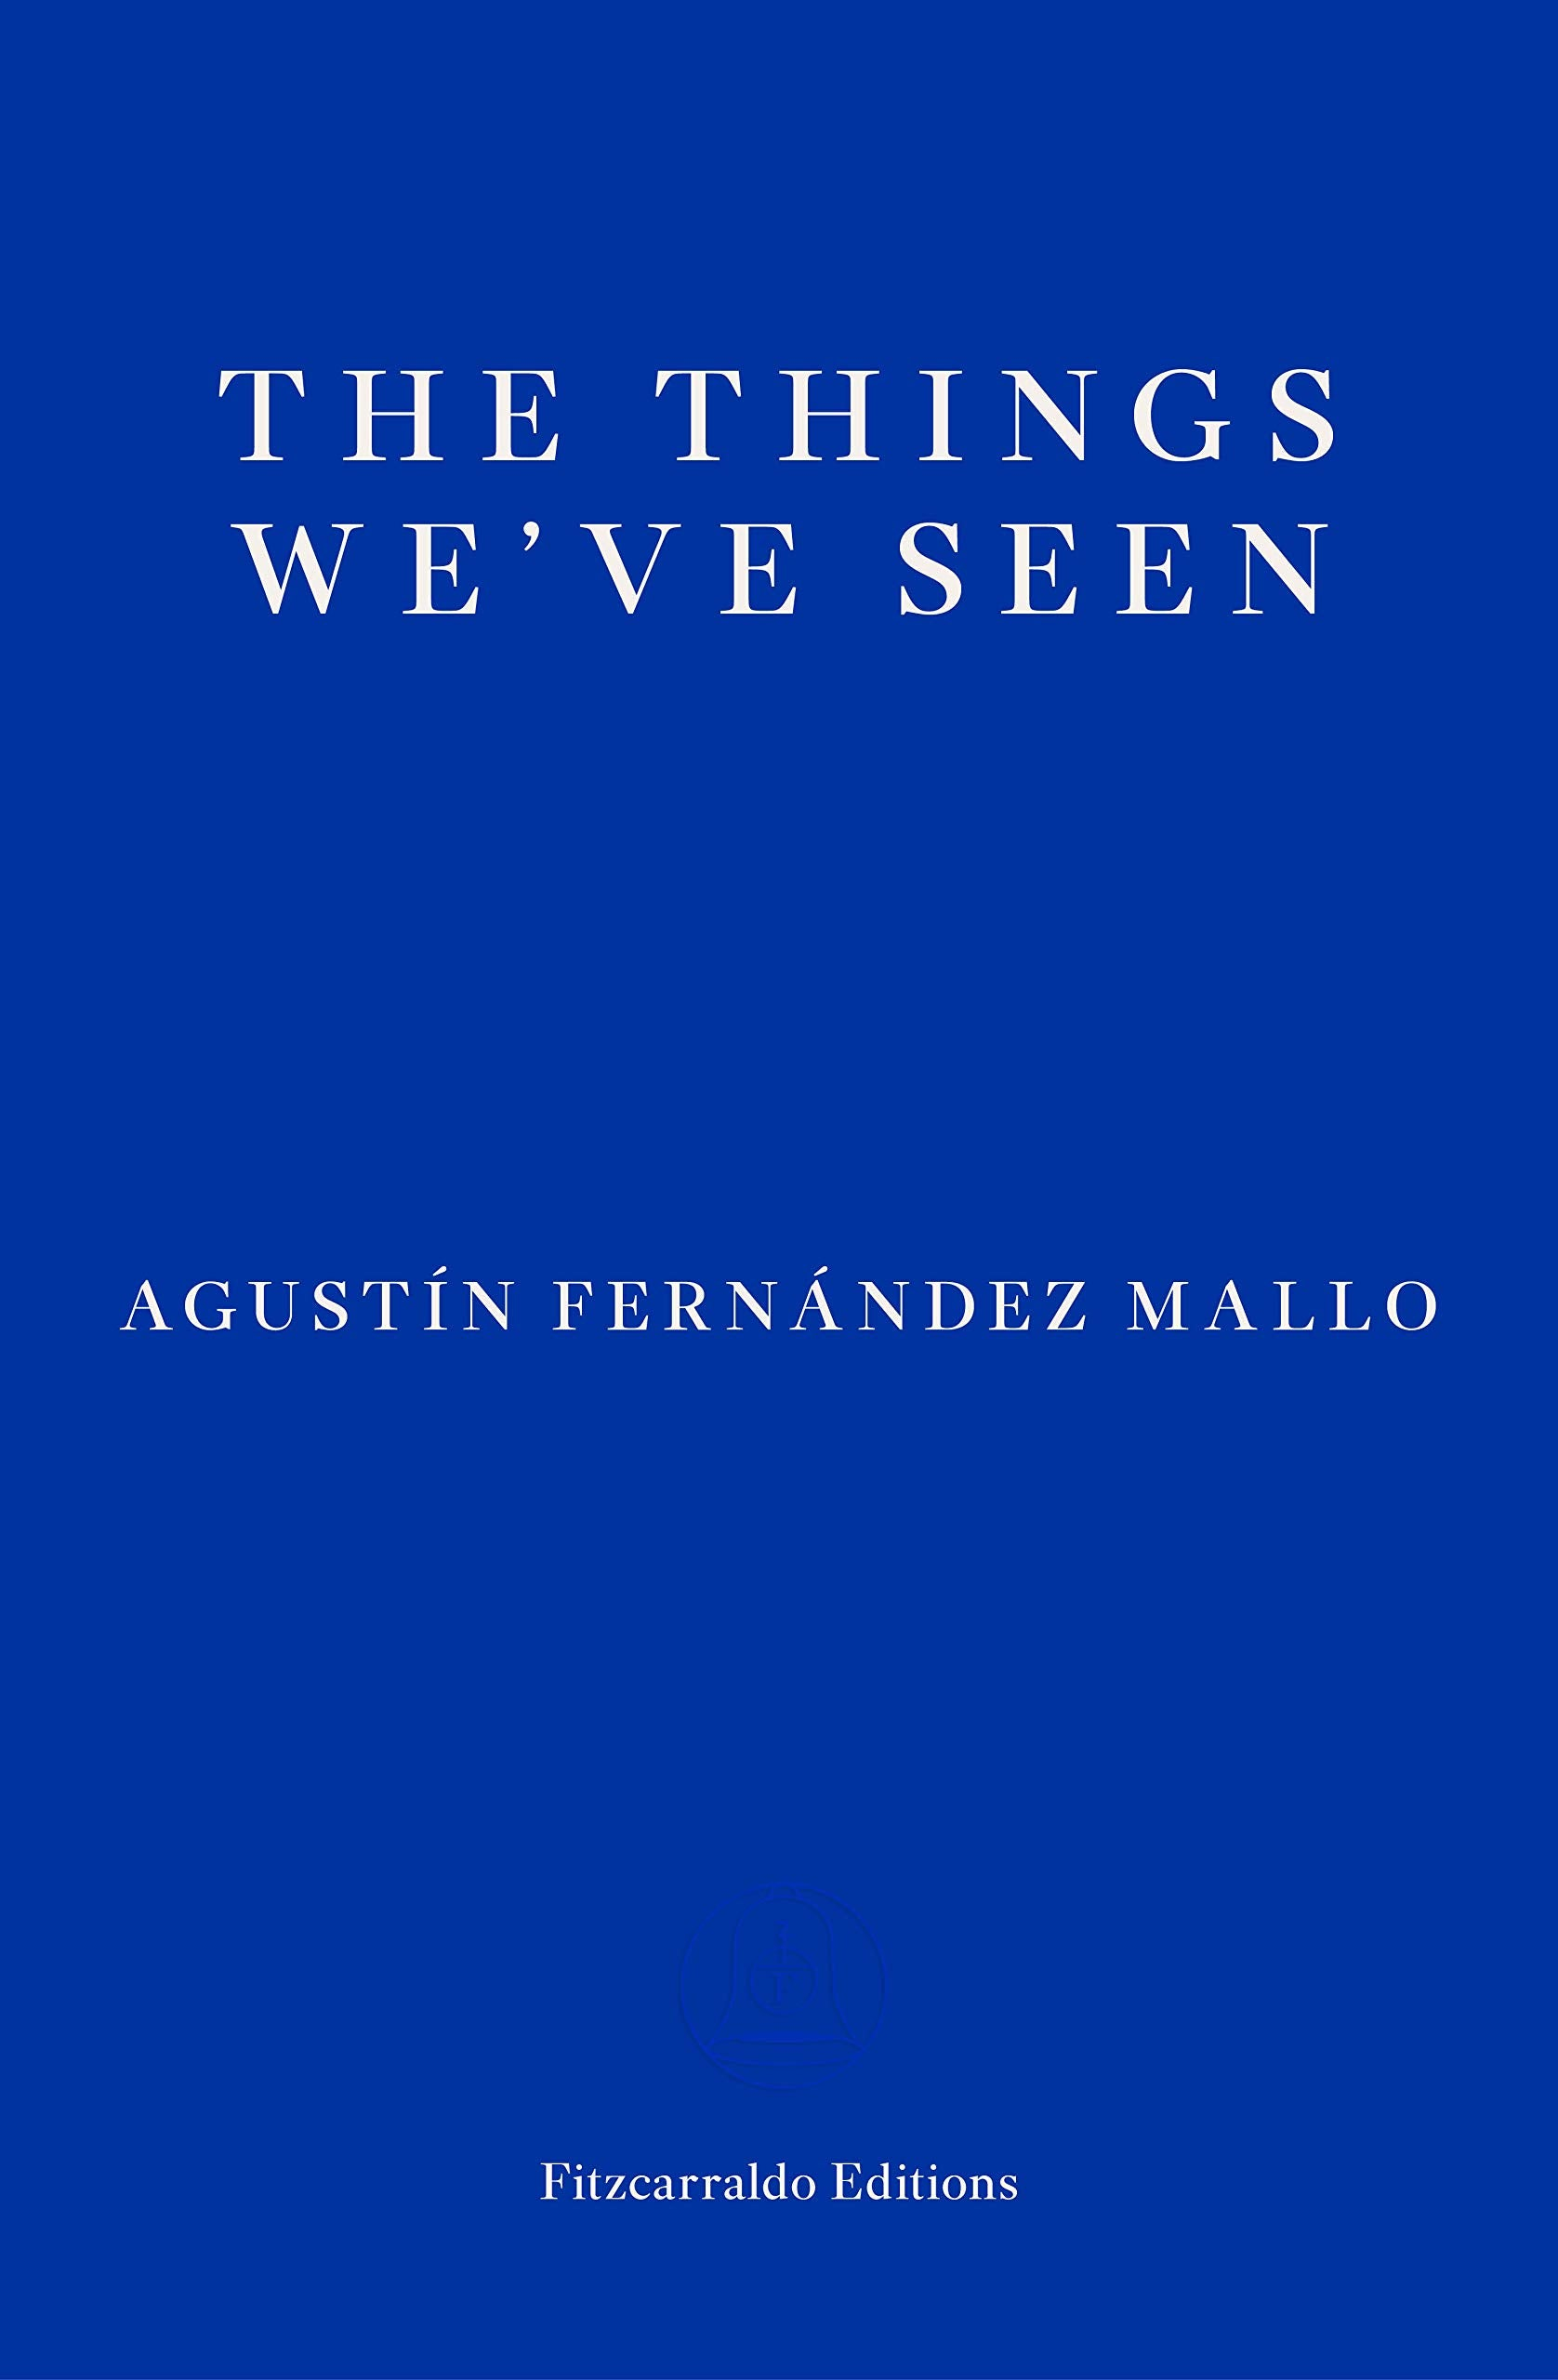 Agustin Fernandez Mallo: The Things We've Seen